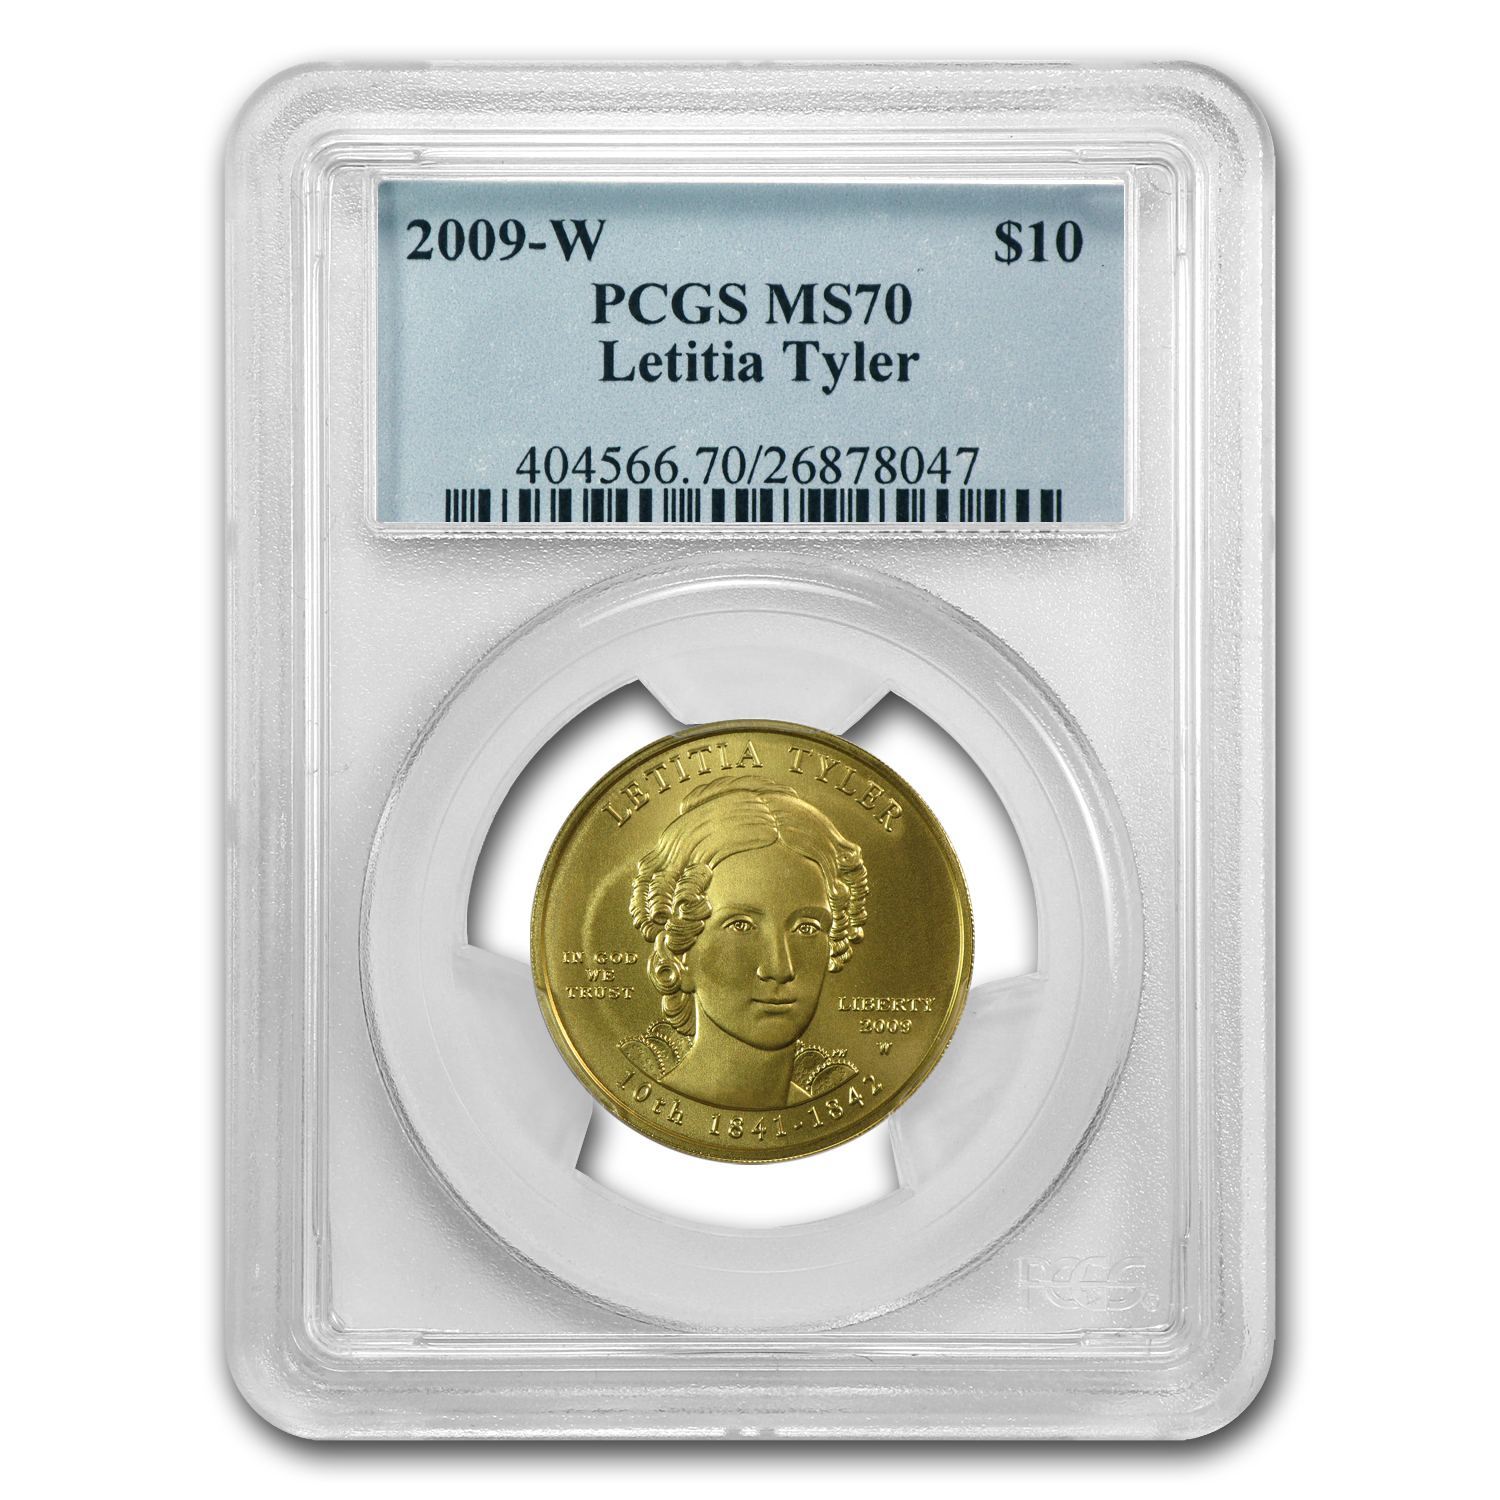 2009-W 1/2 oz Gold Letitia Tyler MS-70 PCGS